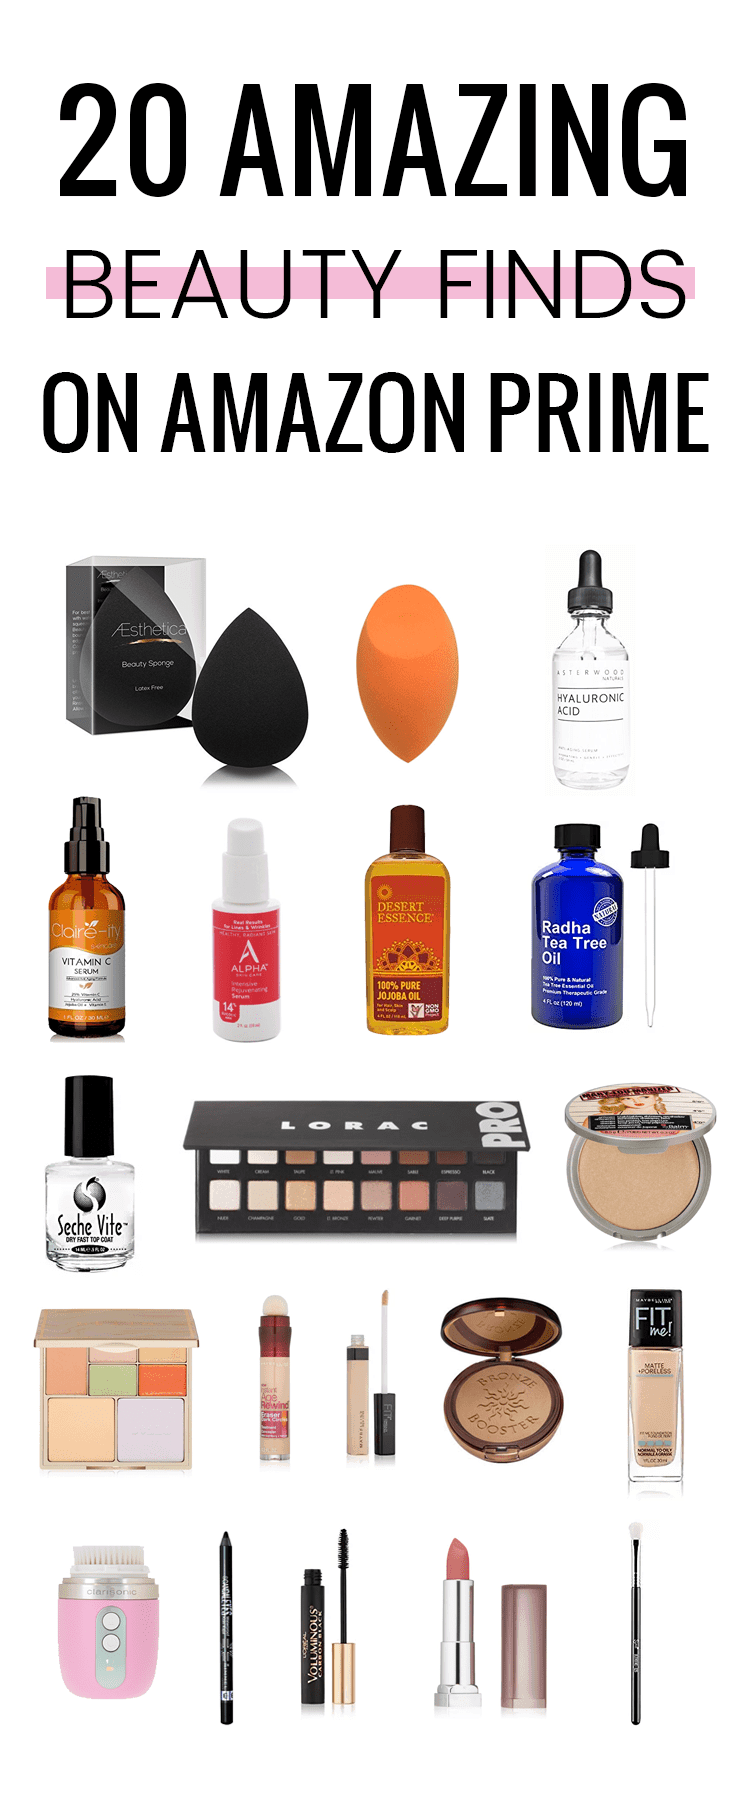 The best beauty finds on Amazon Prime!